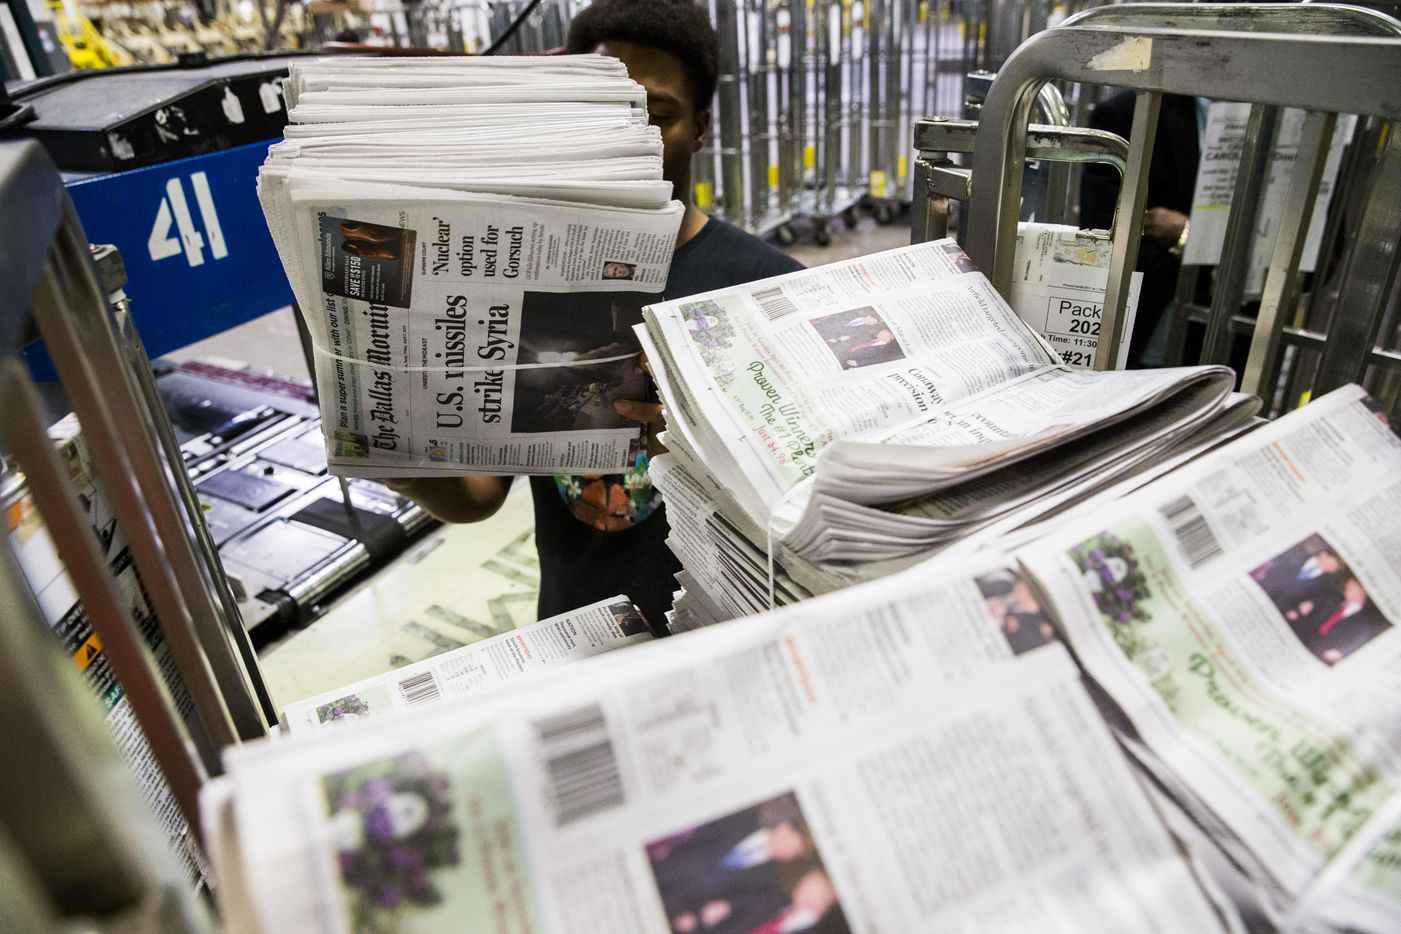 An employee stacks copies of The Dallas Morning News' Friday, April 7, 2017 issue after they were printed. (Ashley Landis/The Dallas Morning News)